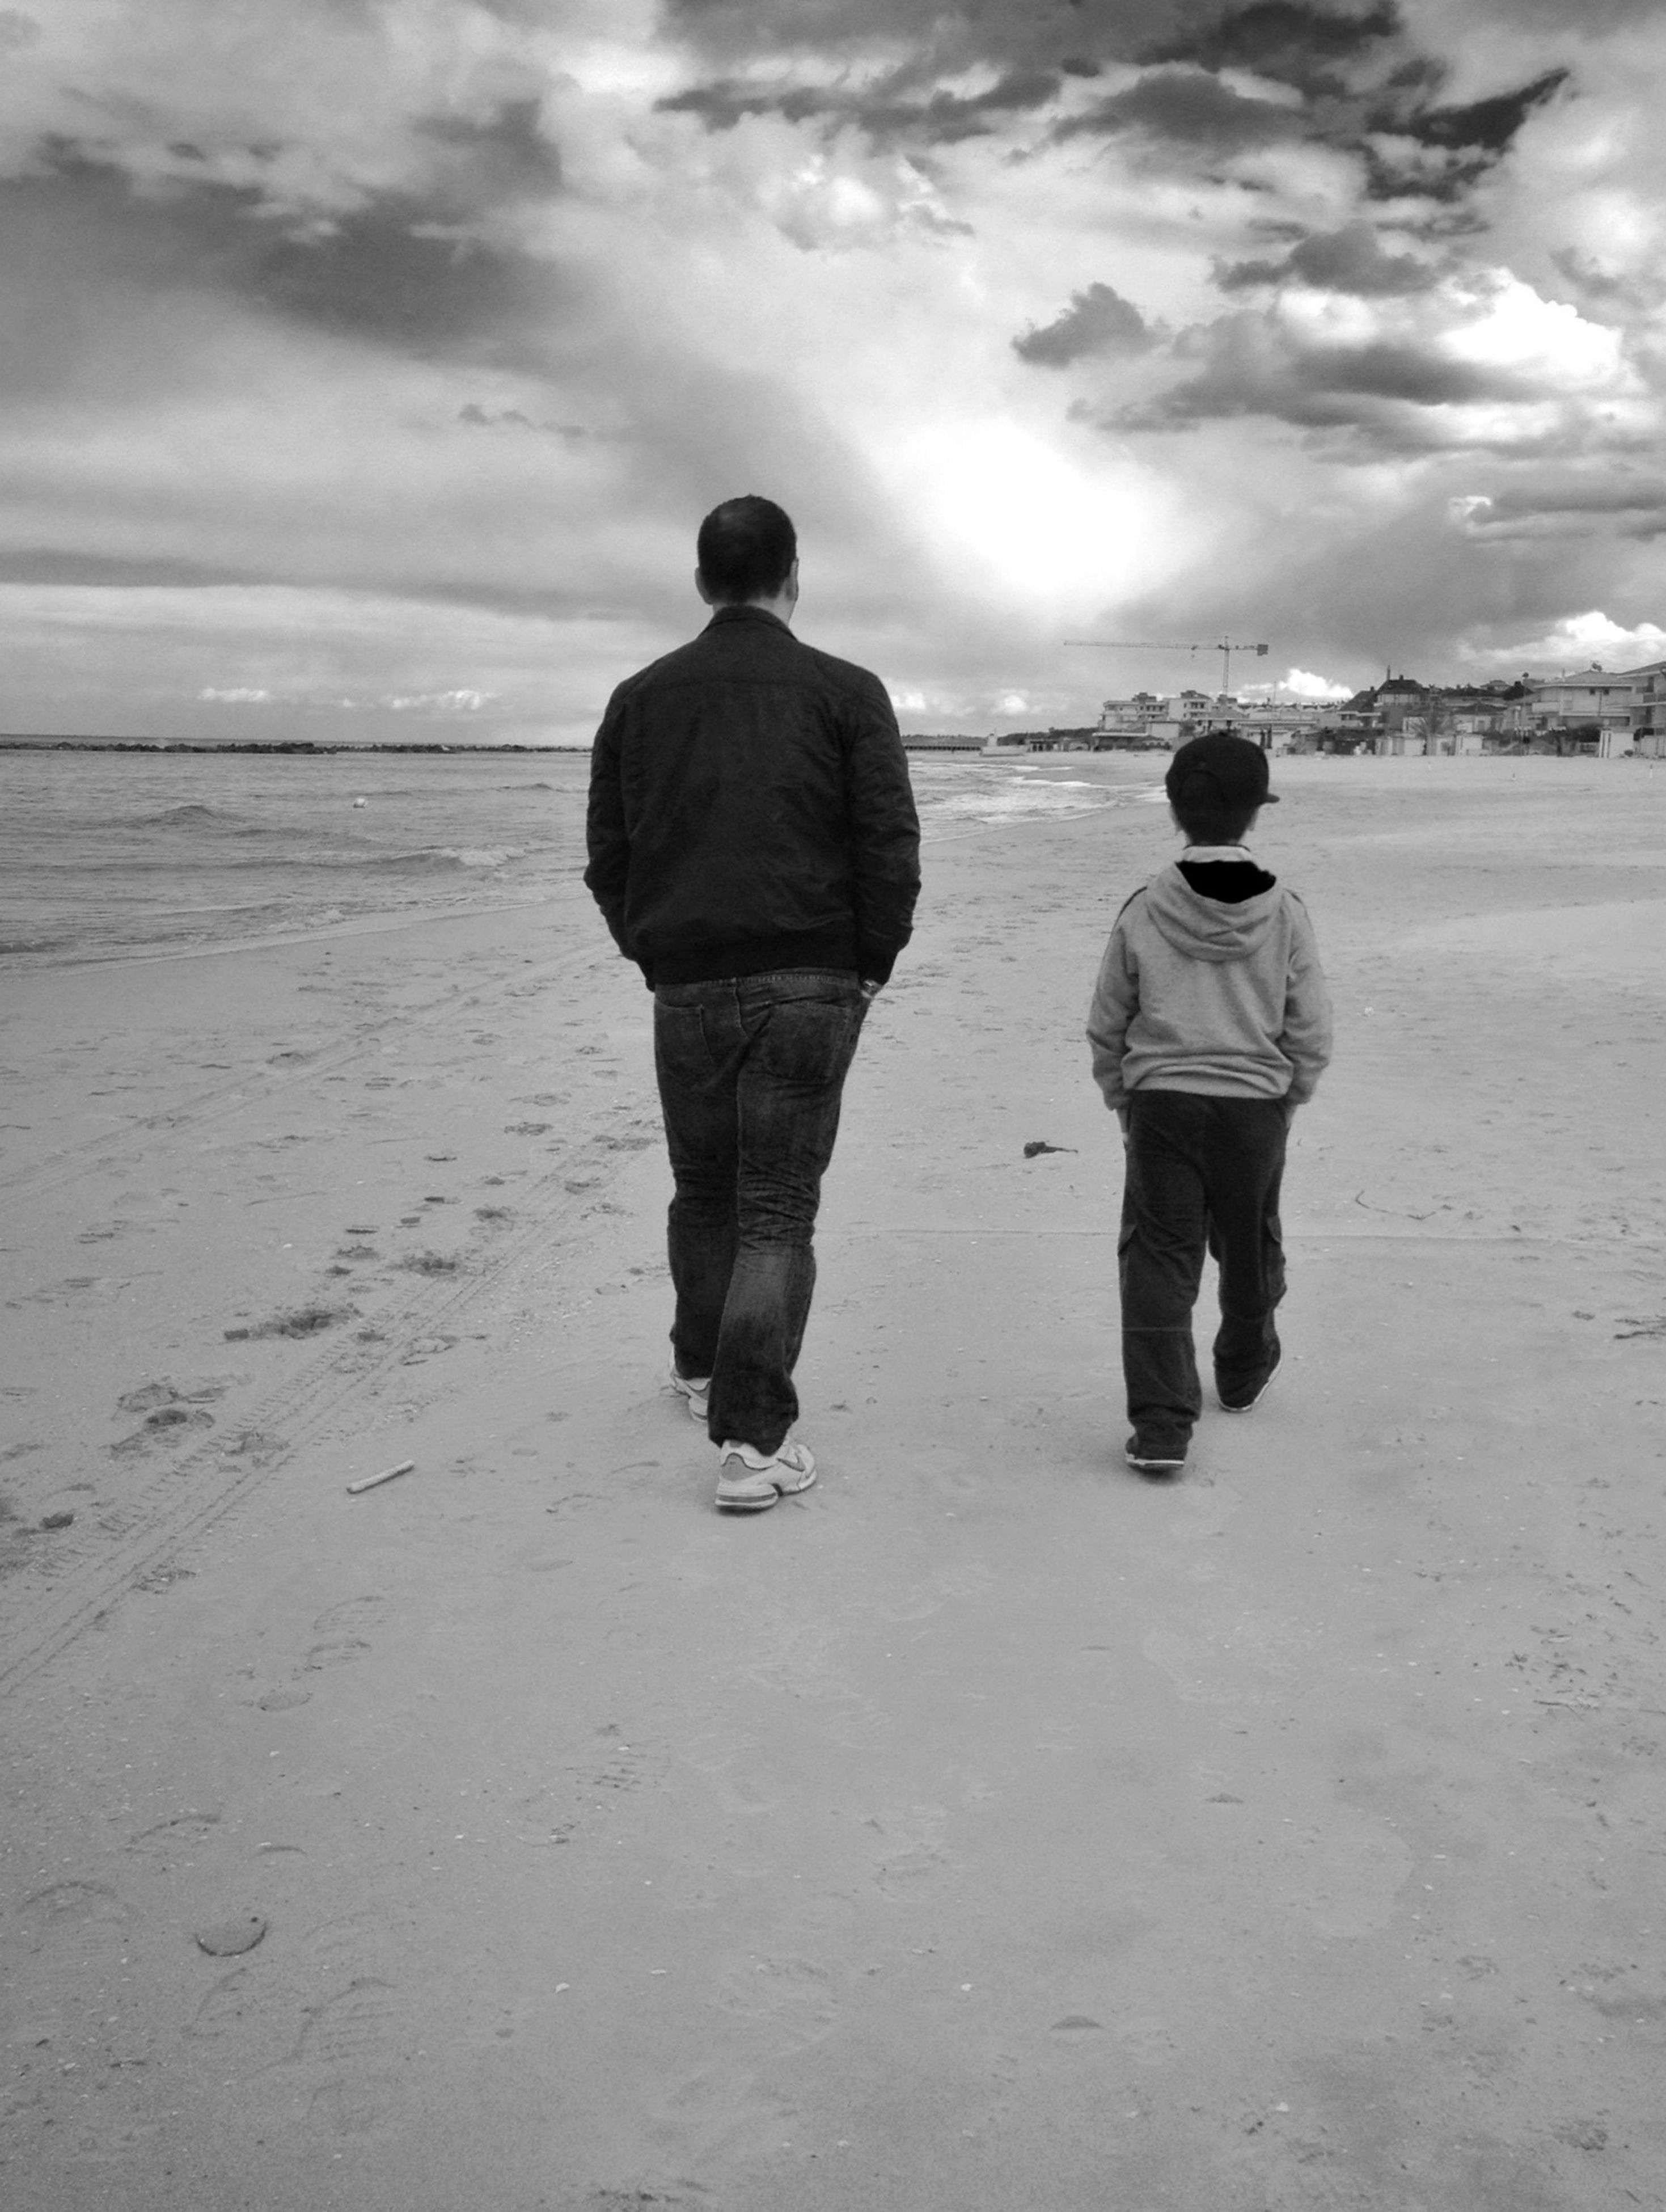 sky, rear view, beach, full length, lifestyles, cloud - sky, sand, leisure activity, sea, casual clothing, shore, standing, men, walking, childhood, cloudy, cloud